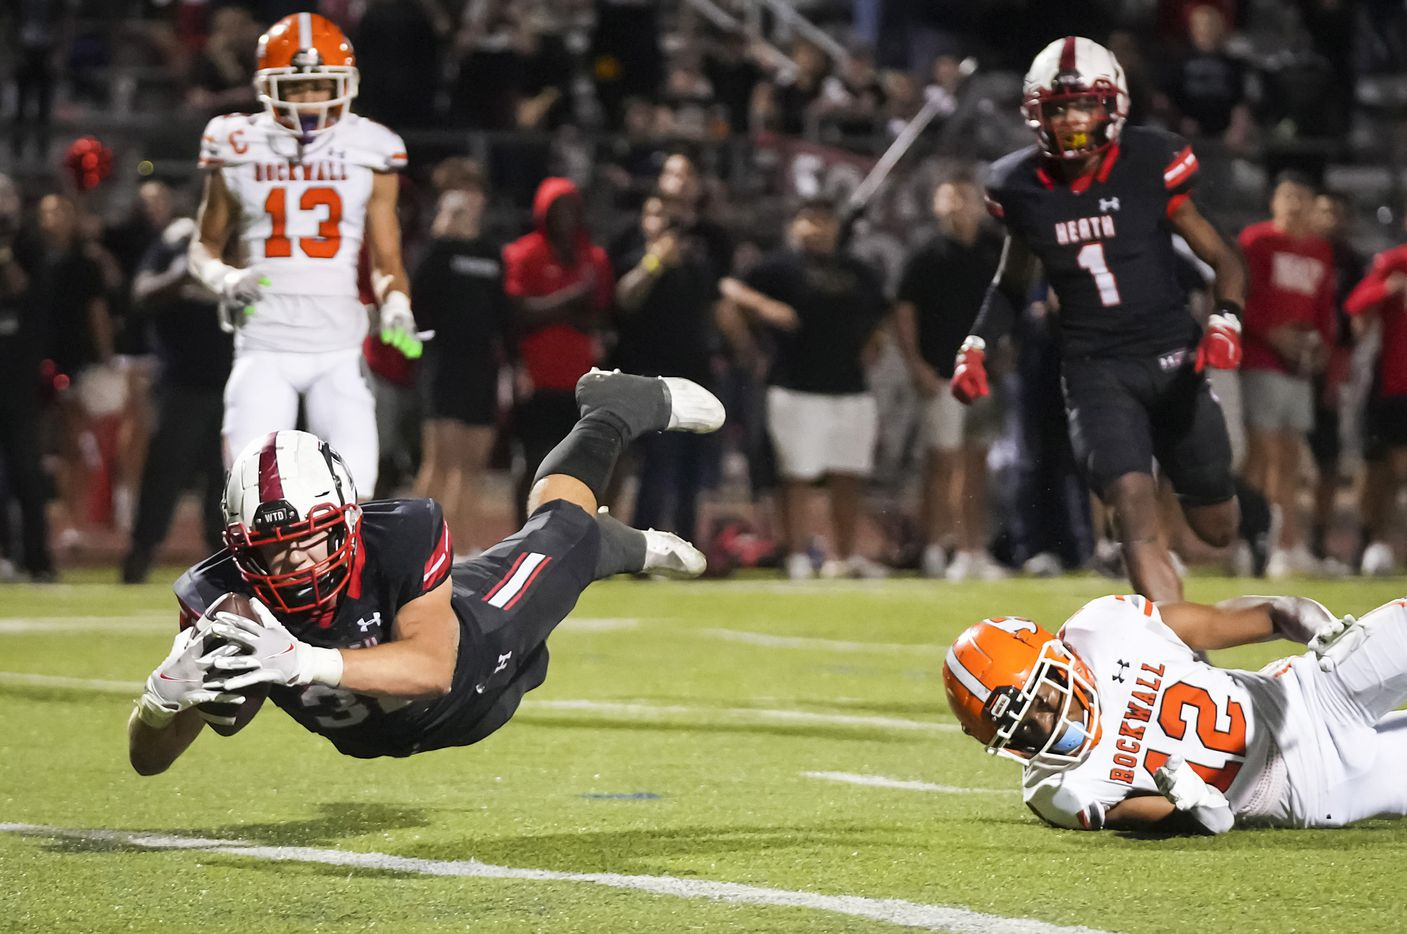 Rockwall-Heath tight end  Lance Mason (38) dives for the end zone to score a 21-yard touchdown pass to give the Hawks the lead with :18 seconds left as Rockwall defensive back Kevin Cunningham (12) defends during the second half of a District 10-6A high school football game at Wilkerson-Sanders Stadium on Friday, Sept. 24, 2021, in Rockwall.  Rockwall-Heath won the game 79-71 in double overtime.